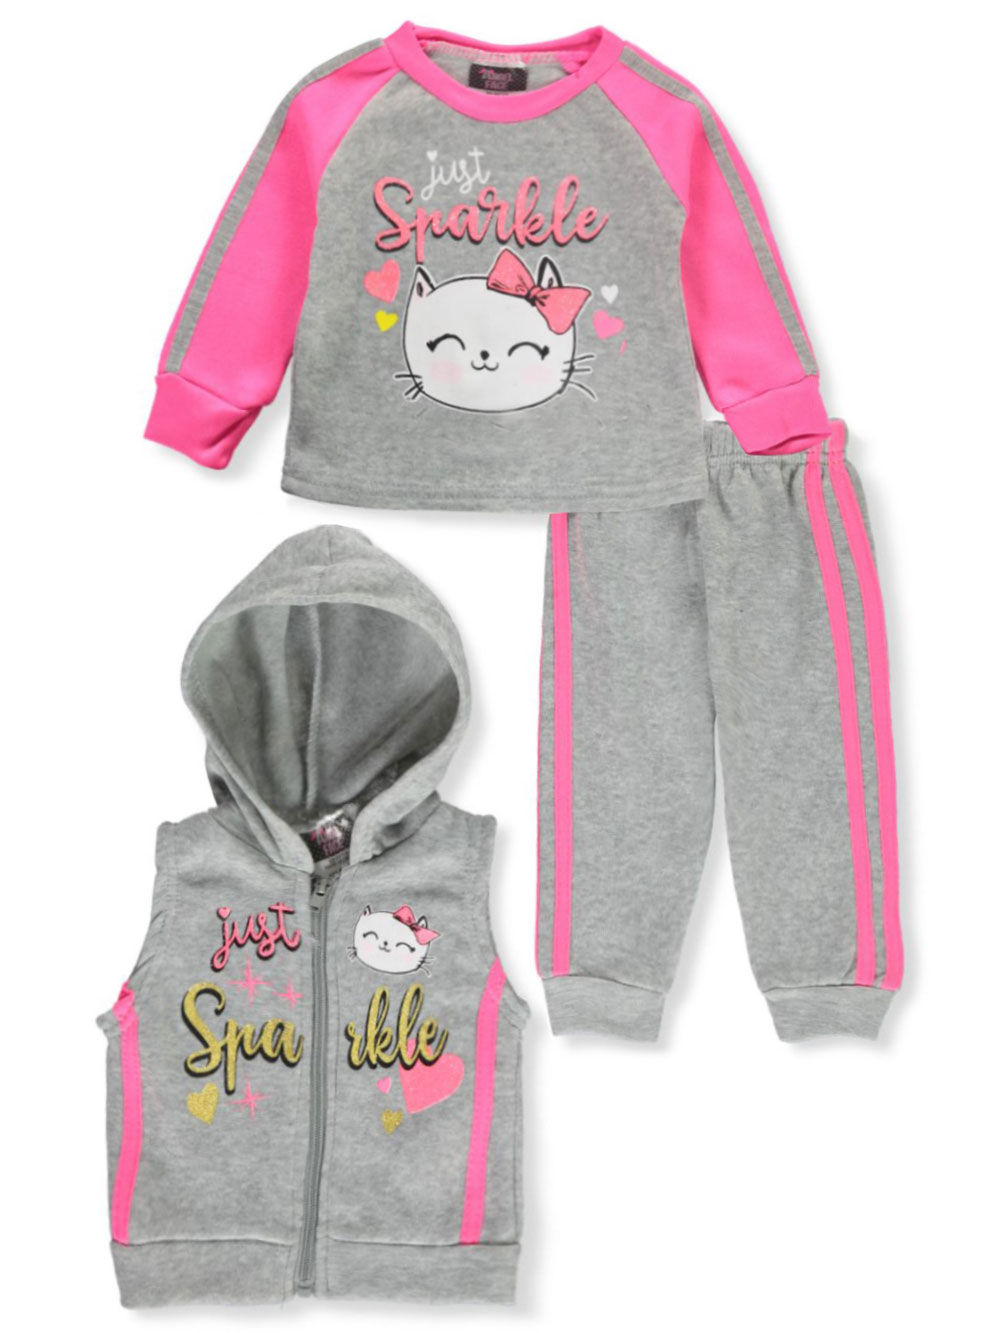 Active Sets 3-Piece Sweatsuit Outfit